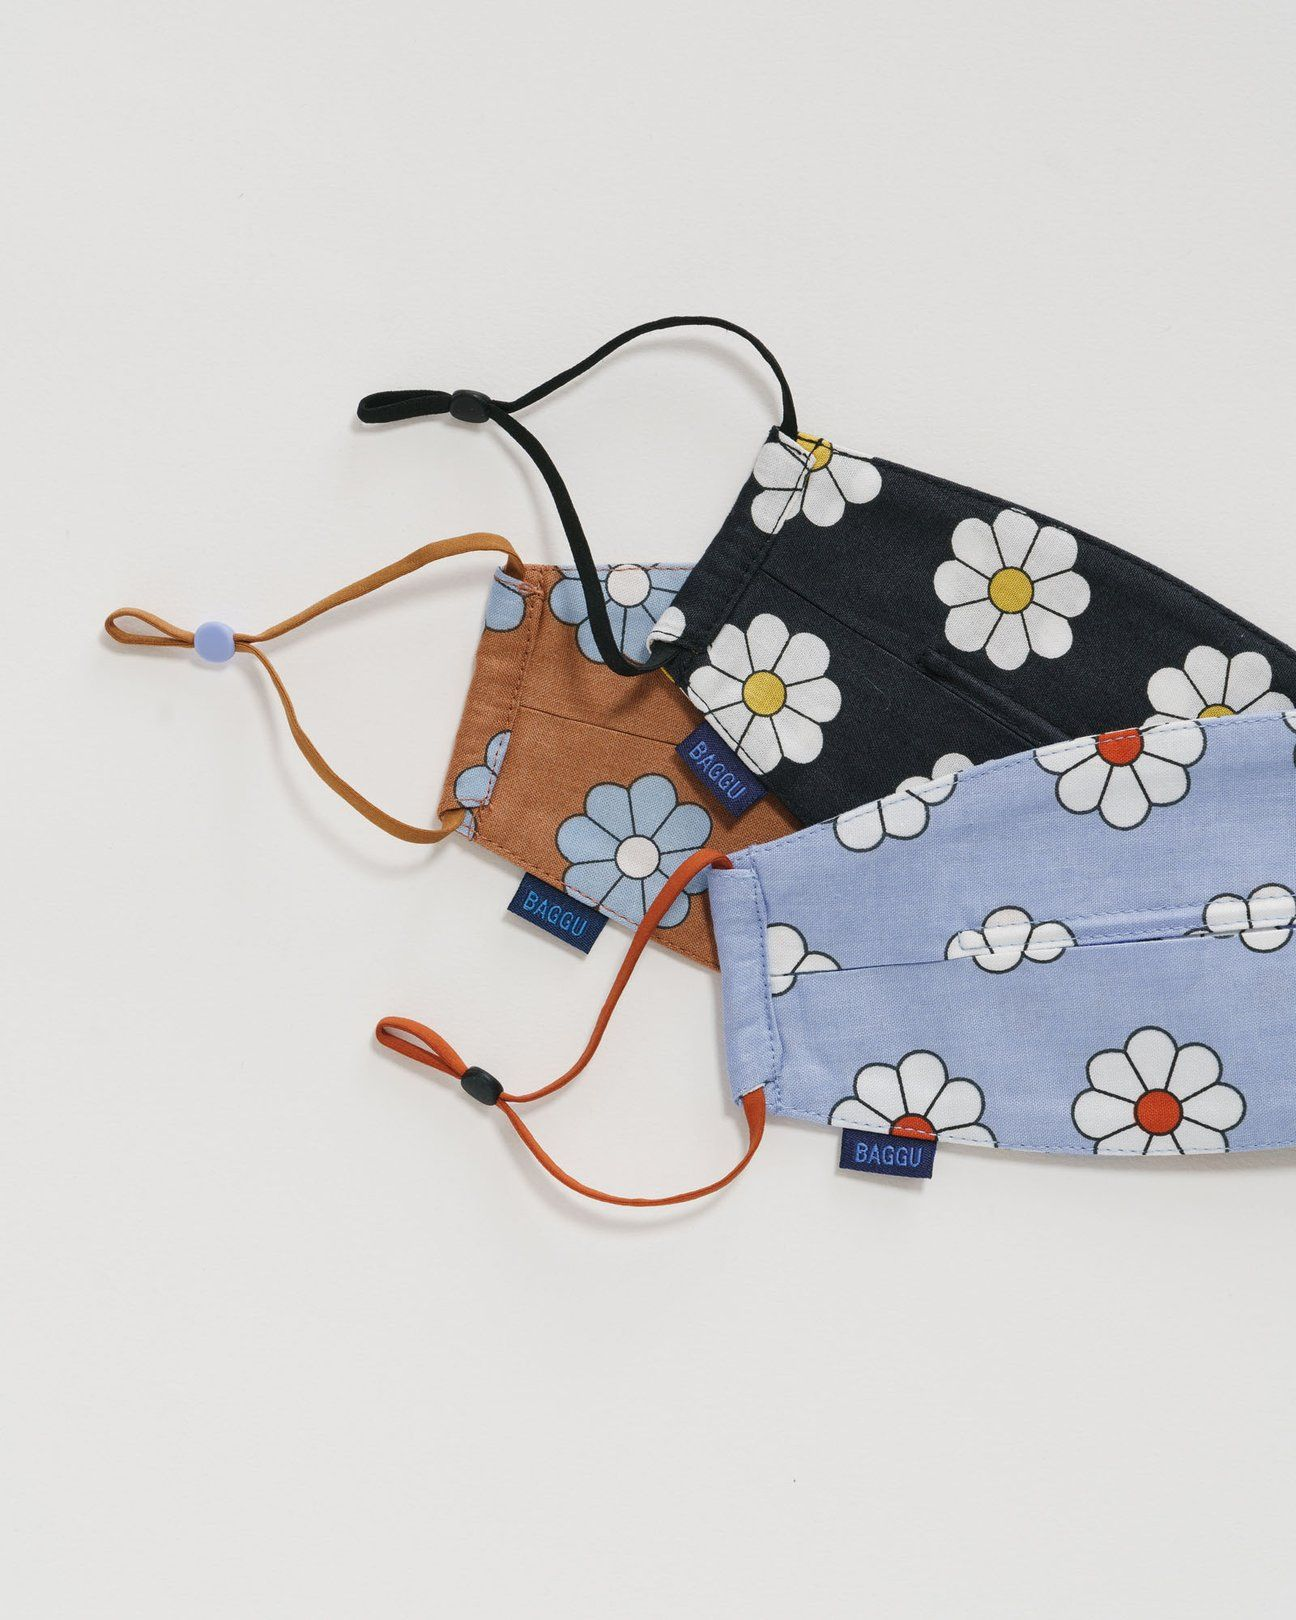 Miss Hosay Fabric Mask Loop Daisy